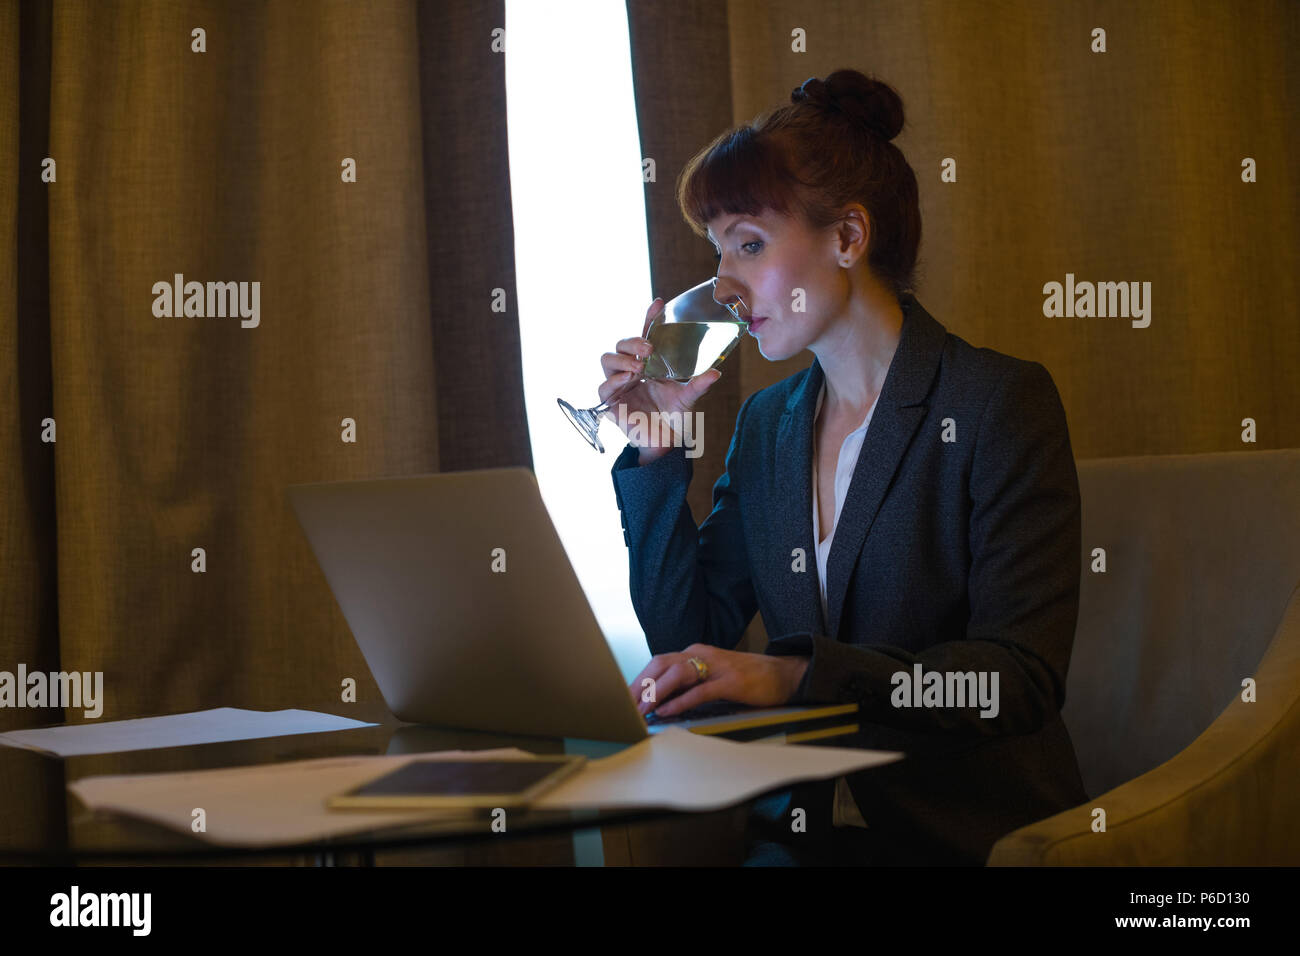 Businesswoman using laptop while having wine Photo Stock